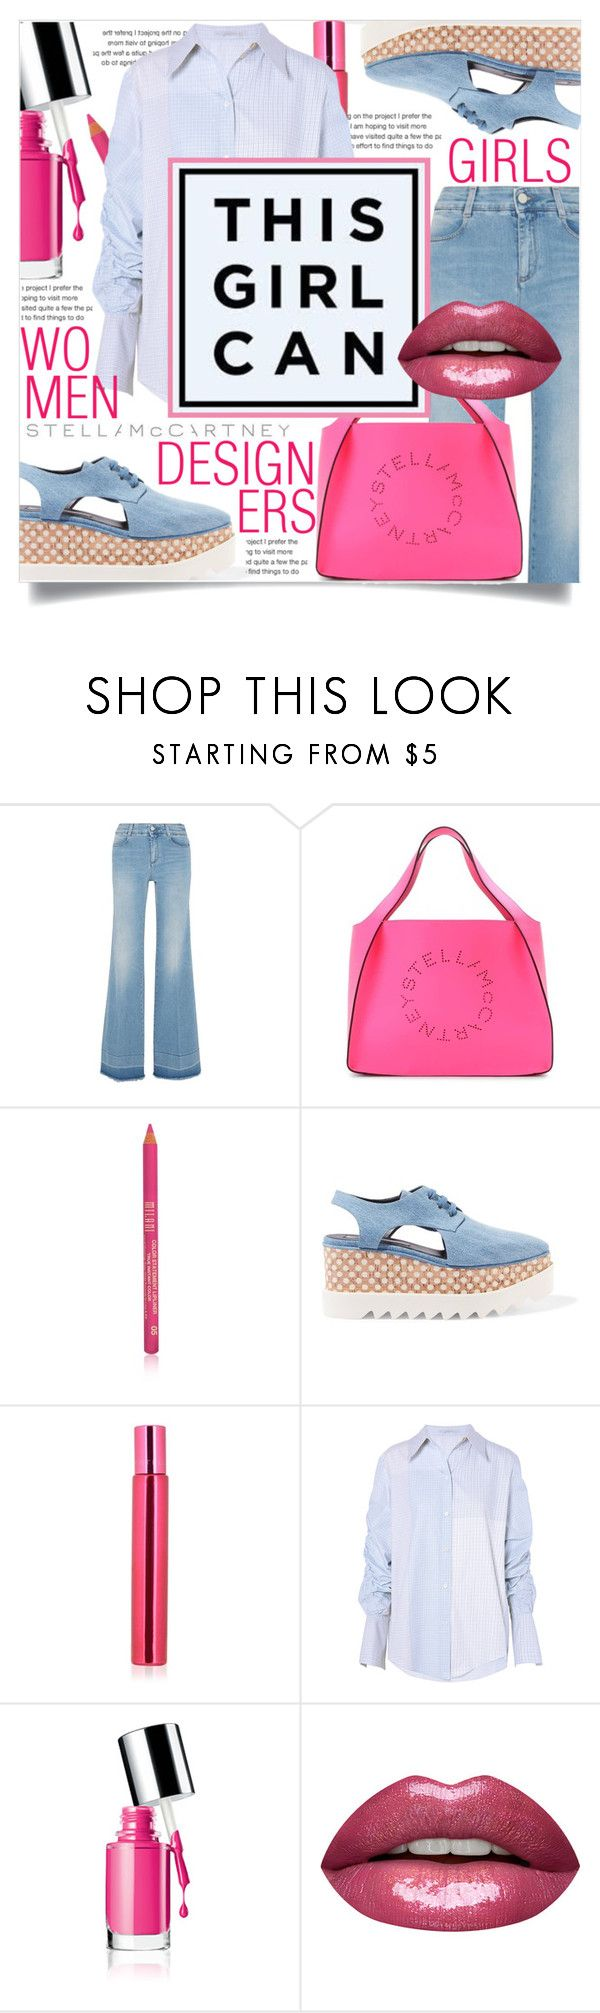 """""""STELLA MC CARTNEY"""" by celine-diaz-1 ❤ liked on Polyvore featuring STELLA McCARTNEY and Mary Engelbreit"""